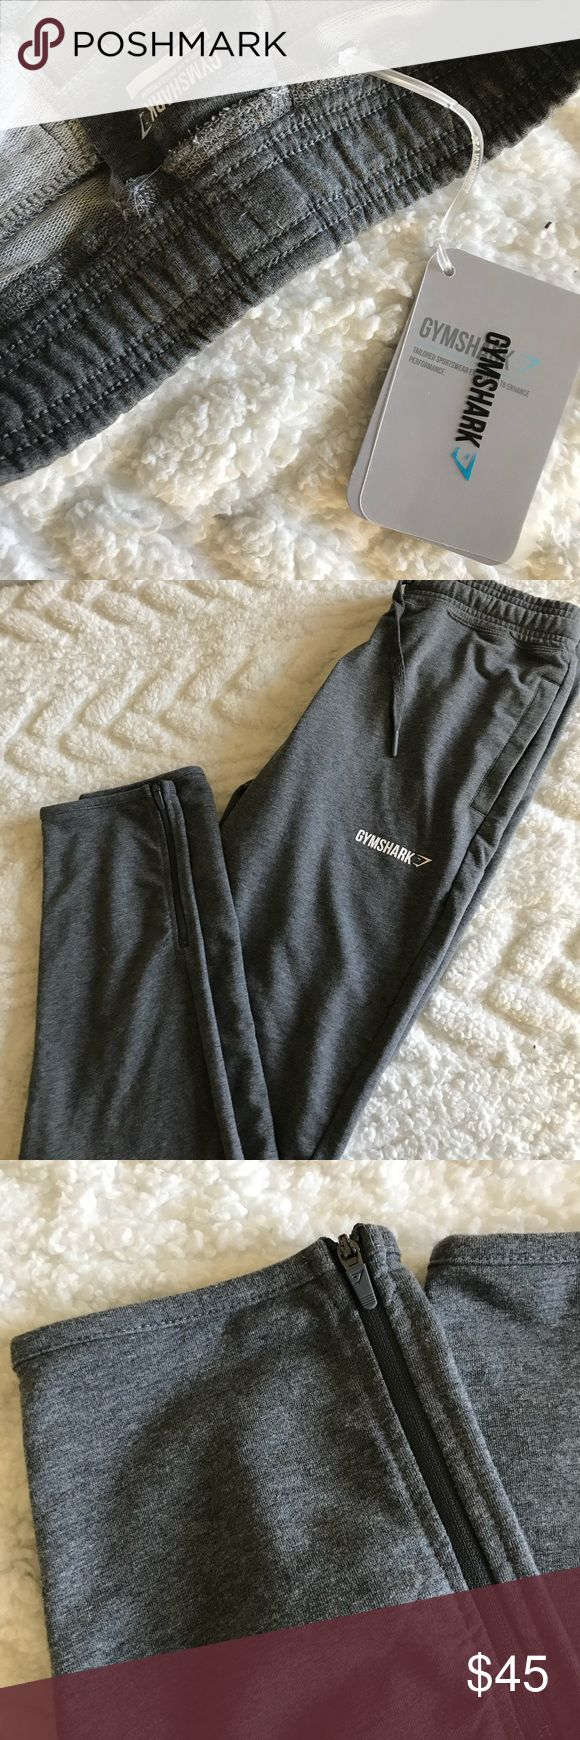 NWT Gymshark Women's Marl Joggers Currently sold out on the Gymshark website, these joggers are soft, fitted and made for sweating it out at the gym. New with tags, never worn, no marks or flaws.  Purchased but didn't fit because they aren't petite sized.  No trades, please! gymshark Pants Track Pants & Joggers